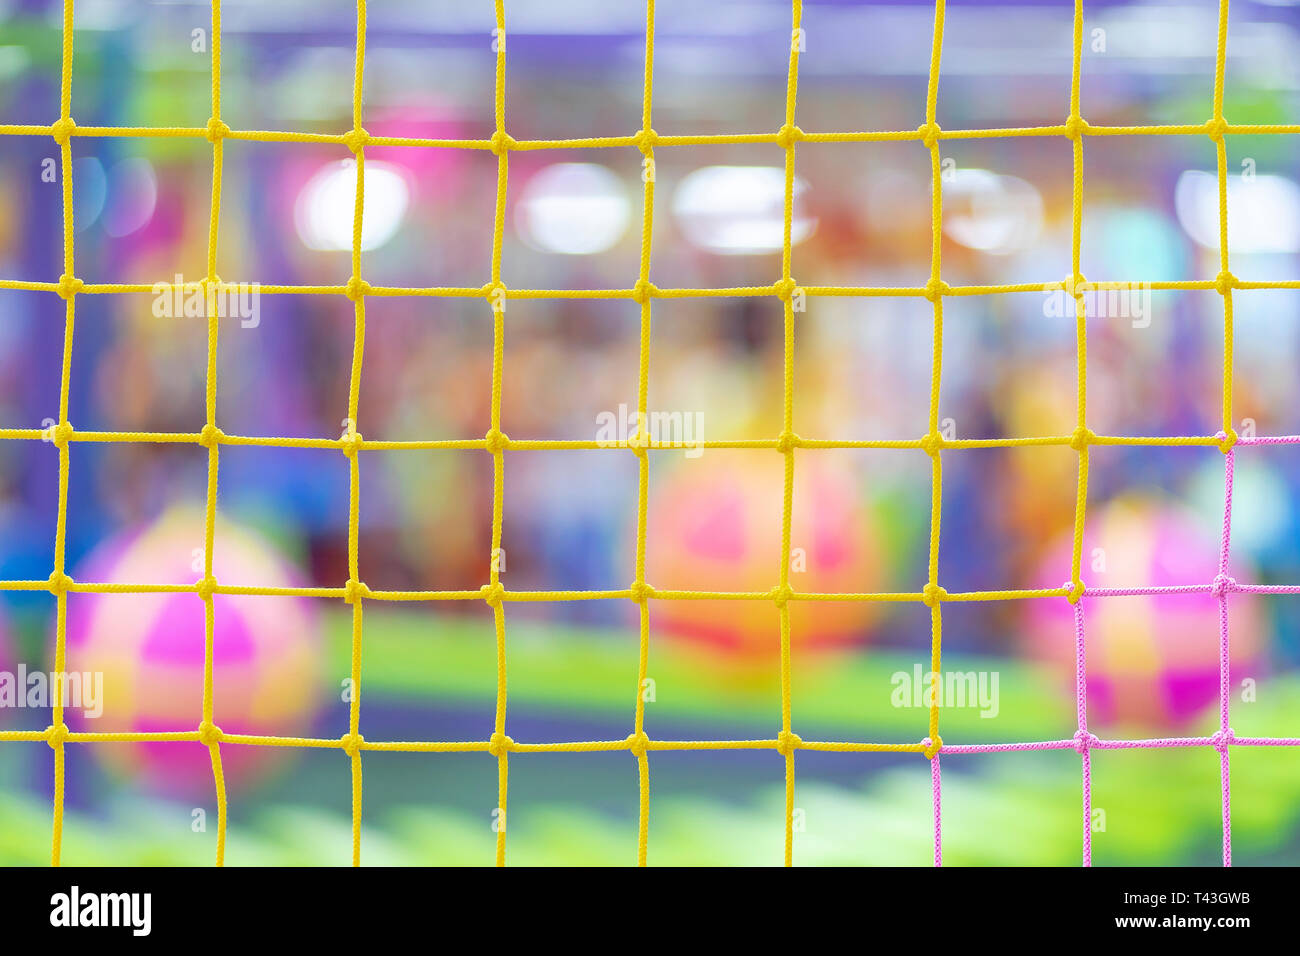 Multi-colored grid on the background of a blurred playground with balls and mazes - Stock Image